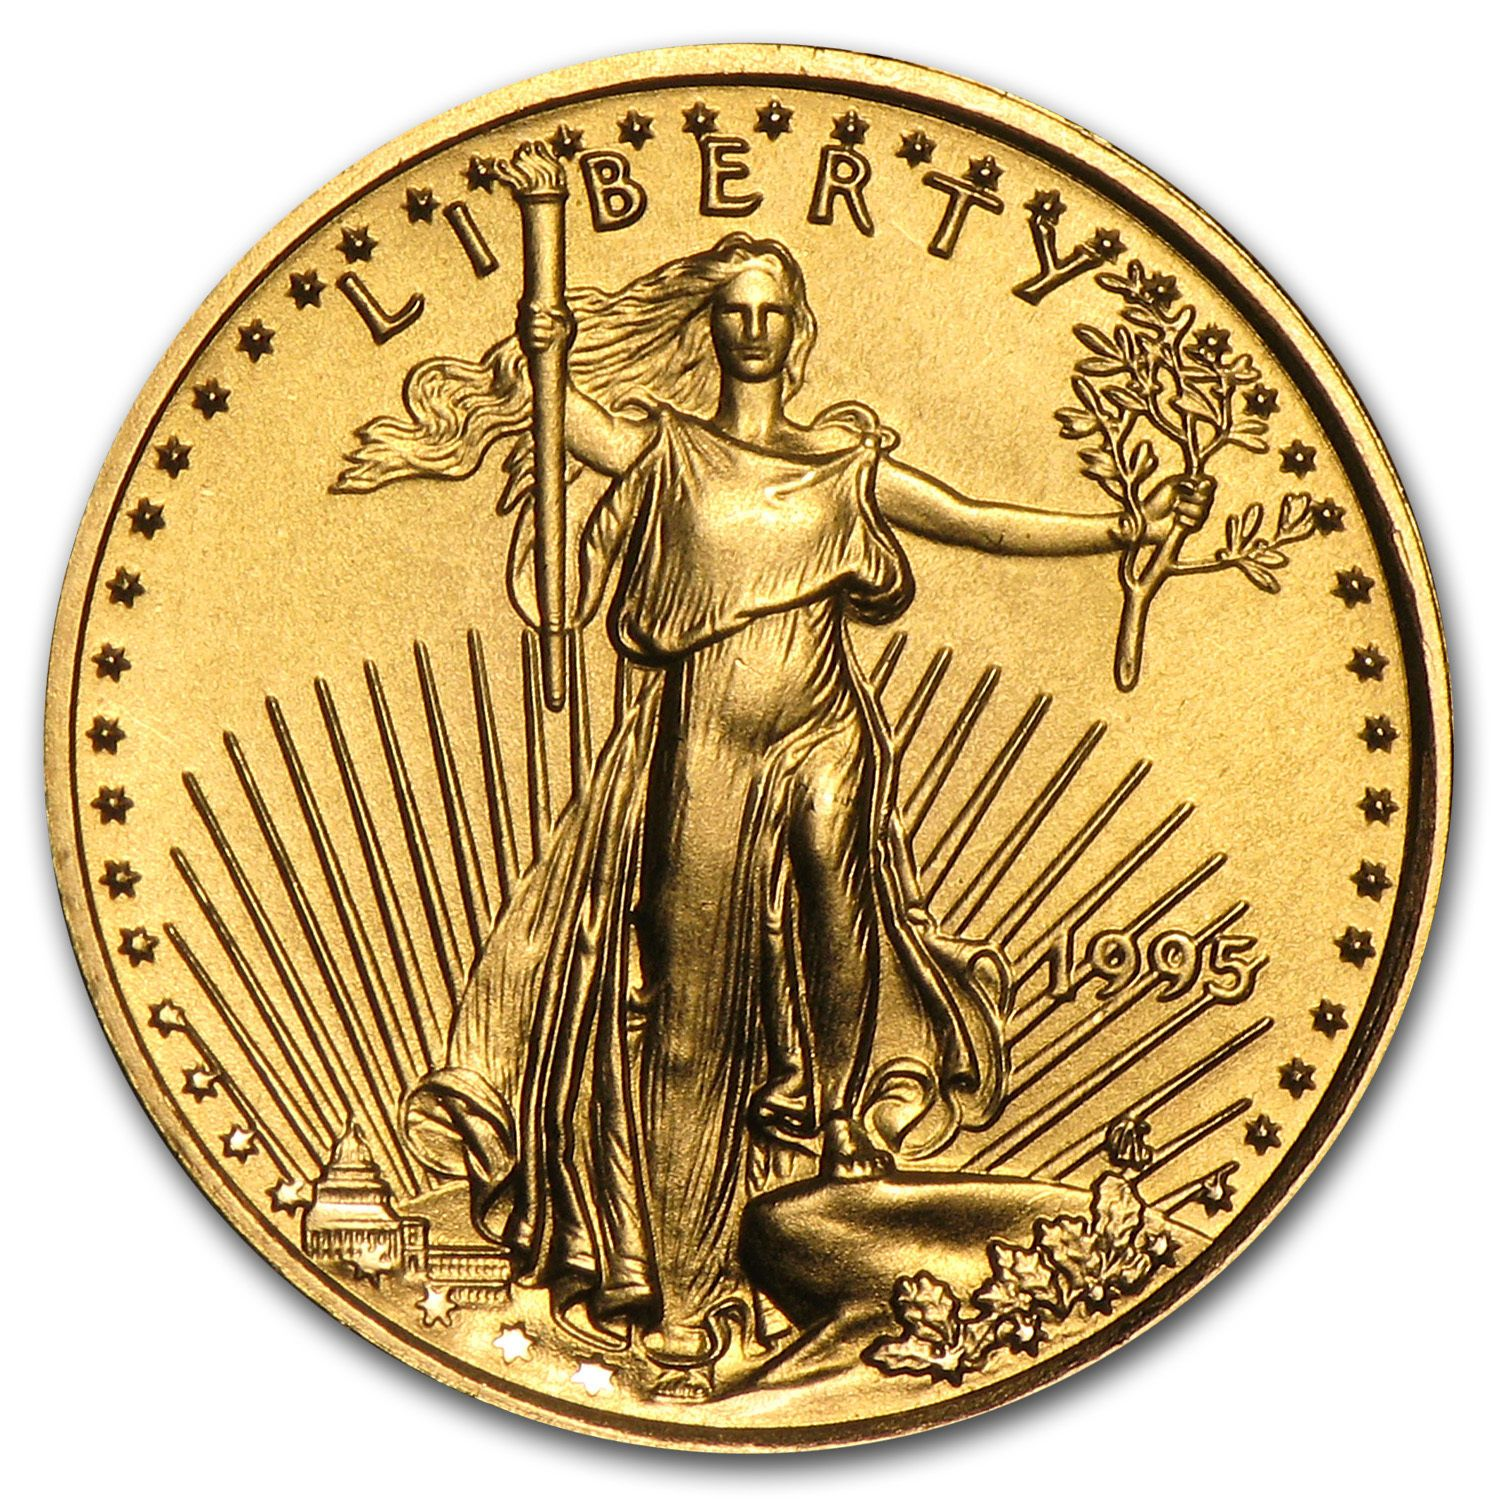 1995 1 10 Oz Gold American Eagle Coin Brilliant Uncirculated Sku 4703 Gold Bullion Coins Gold American Eagle Gold Eagle Coins